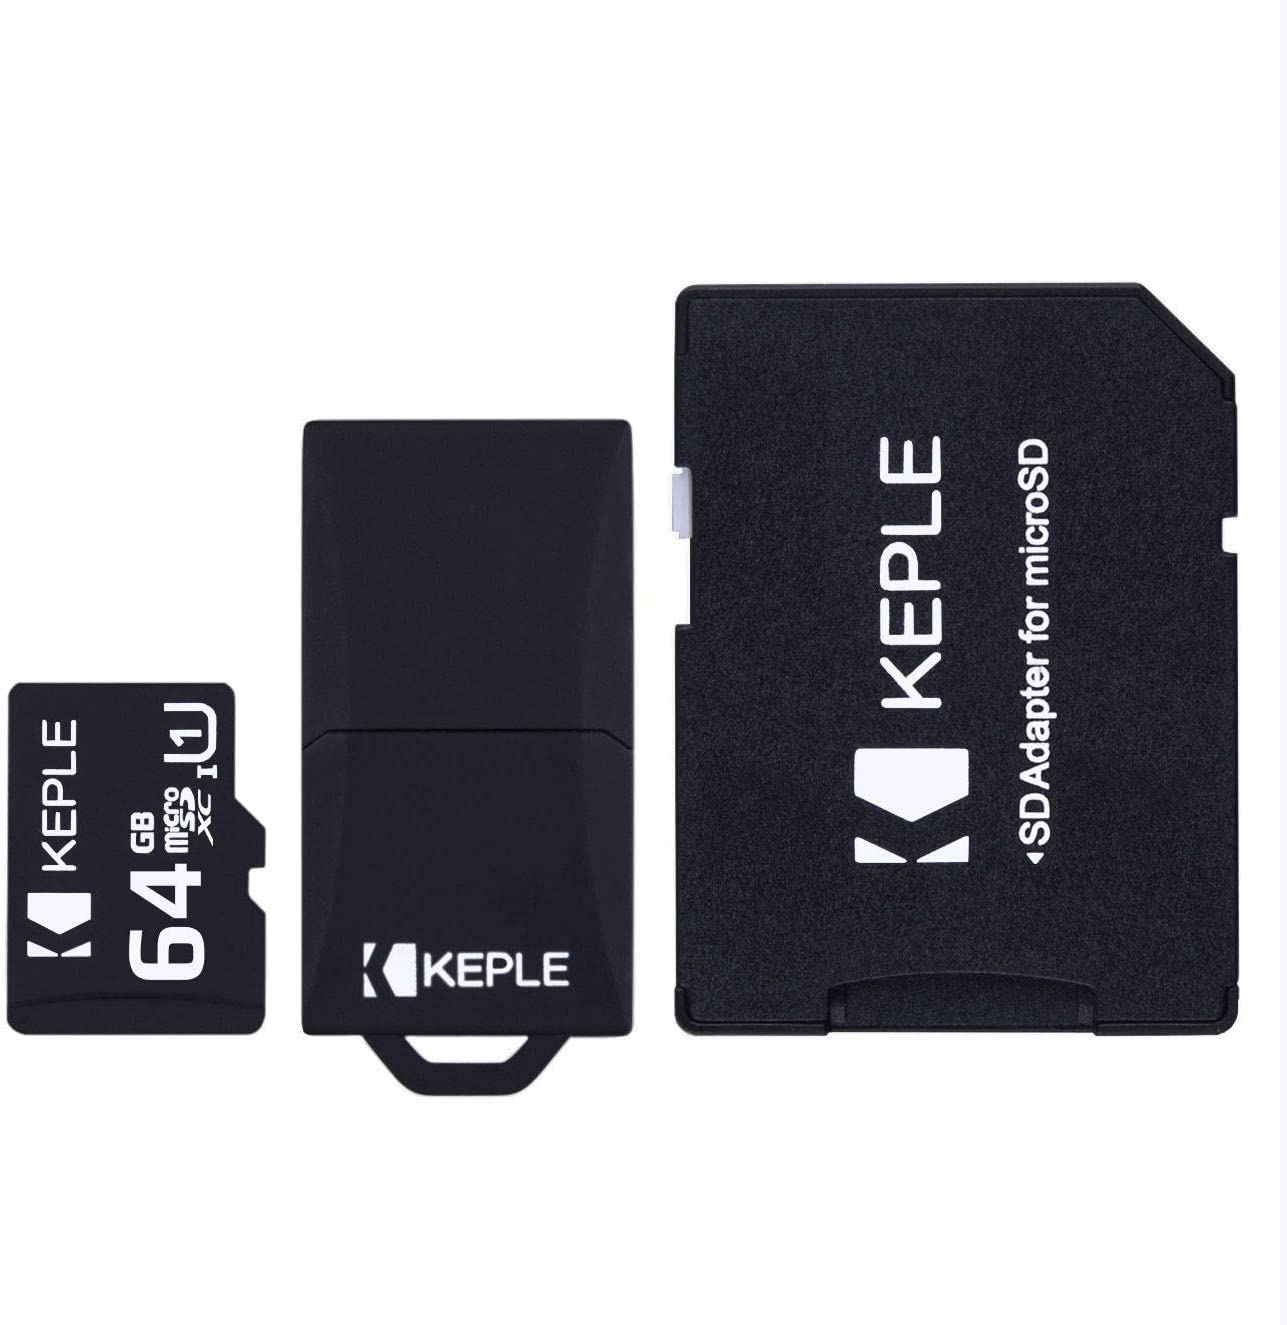 64GB microSD Memory Card | Micro SD Class 10 Compatible with Amazon Kindle Fire 7, Kids Edition, Fire HD 8 / HD8, Fire HD 10 / HDX 7, HDX 8.9. Fits All 7 or 8.9 inches Tablet PC | 64 GB